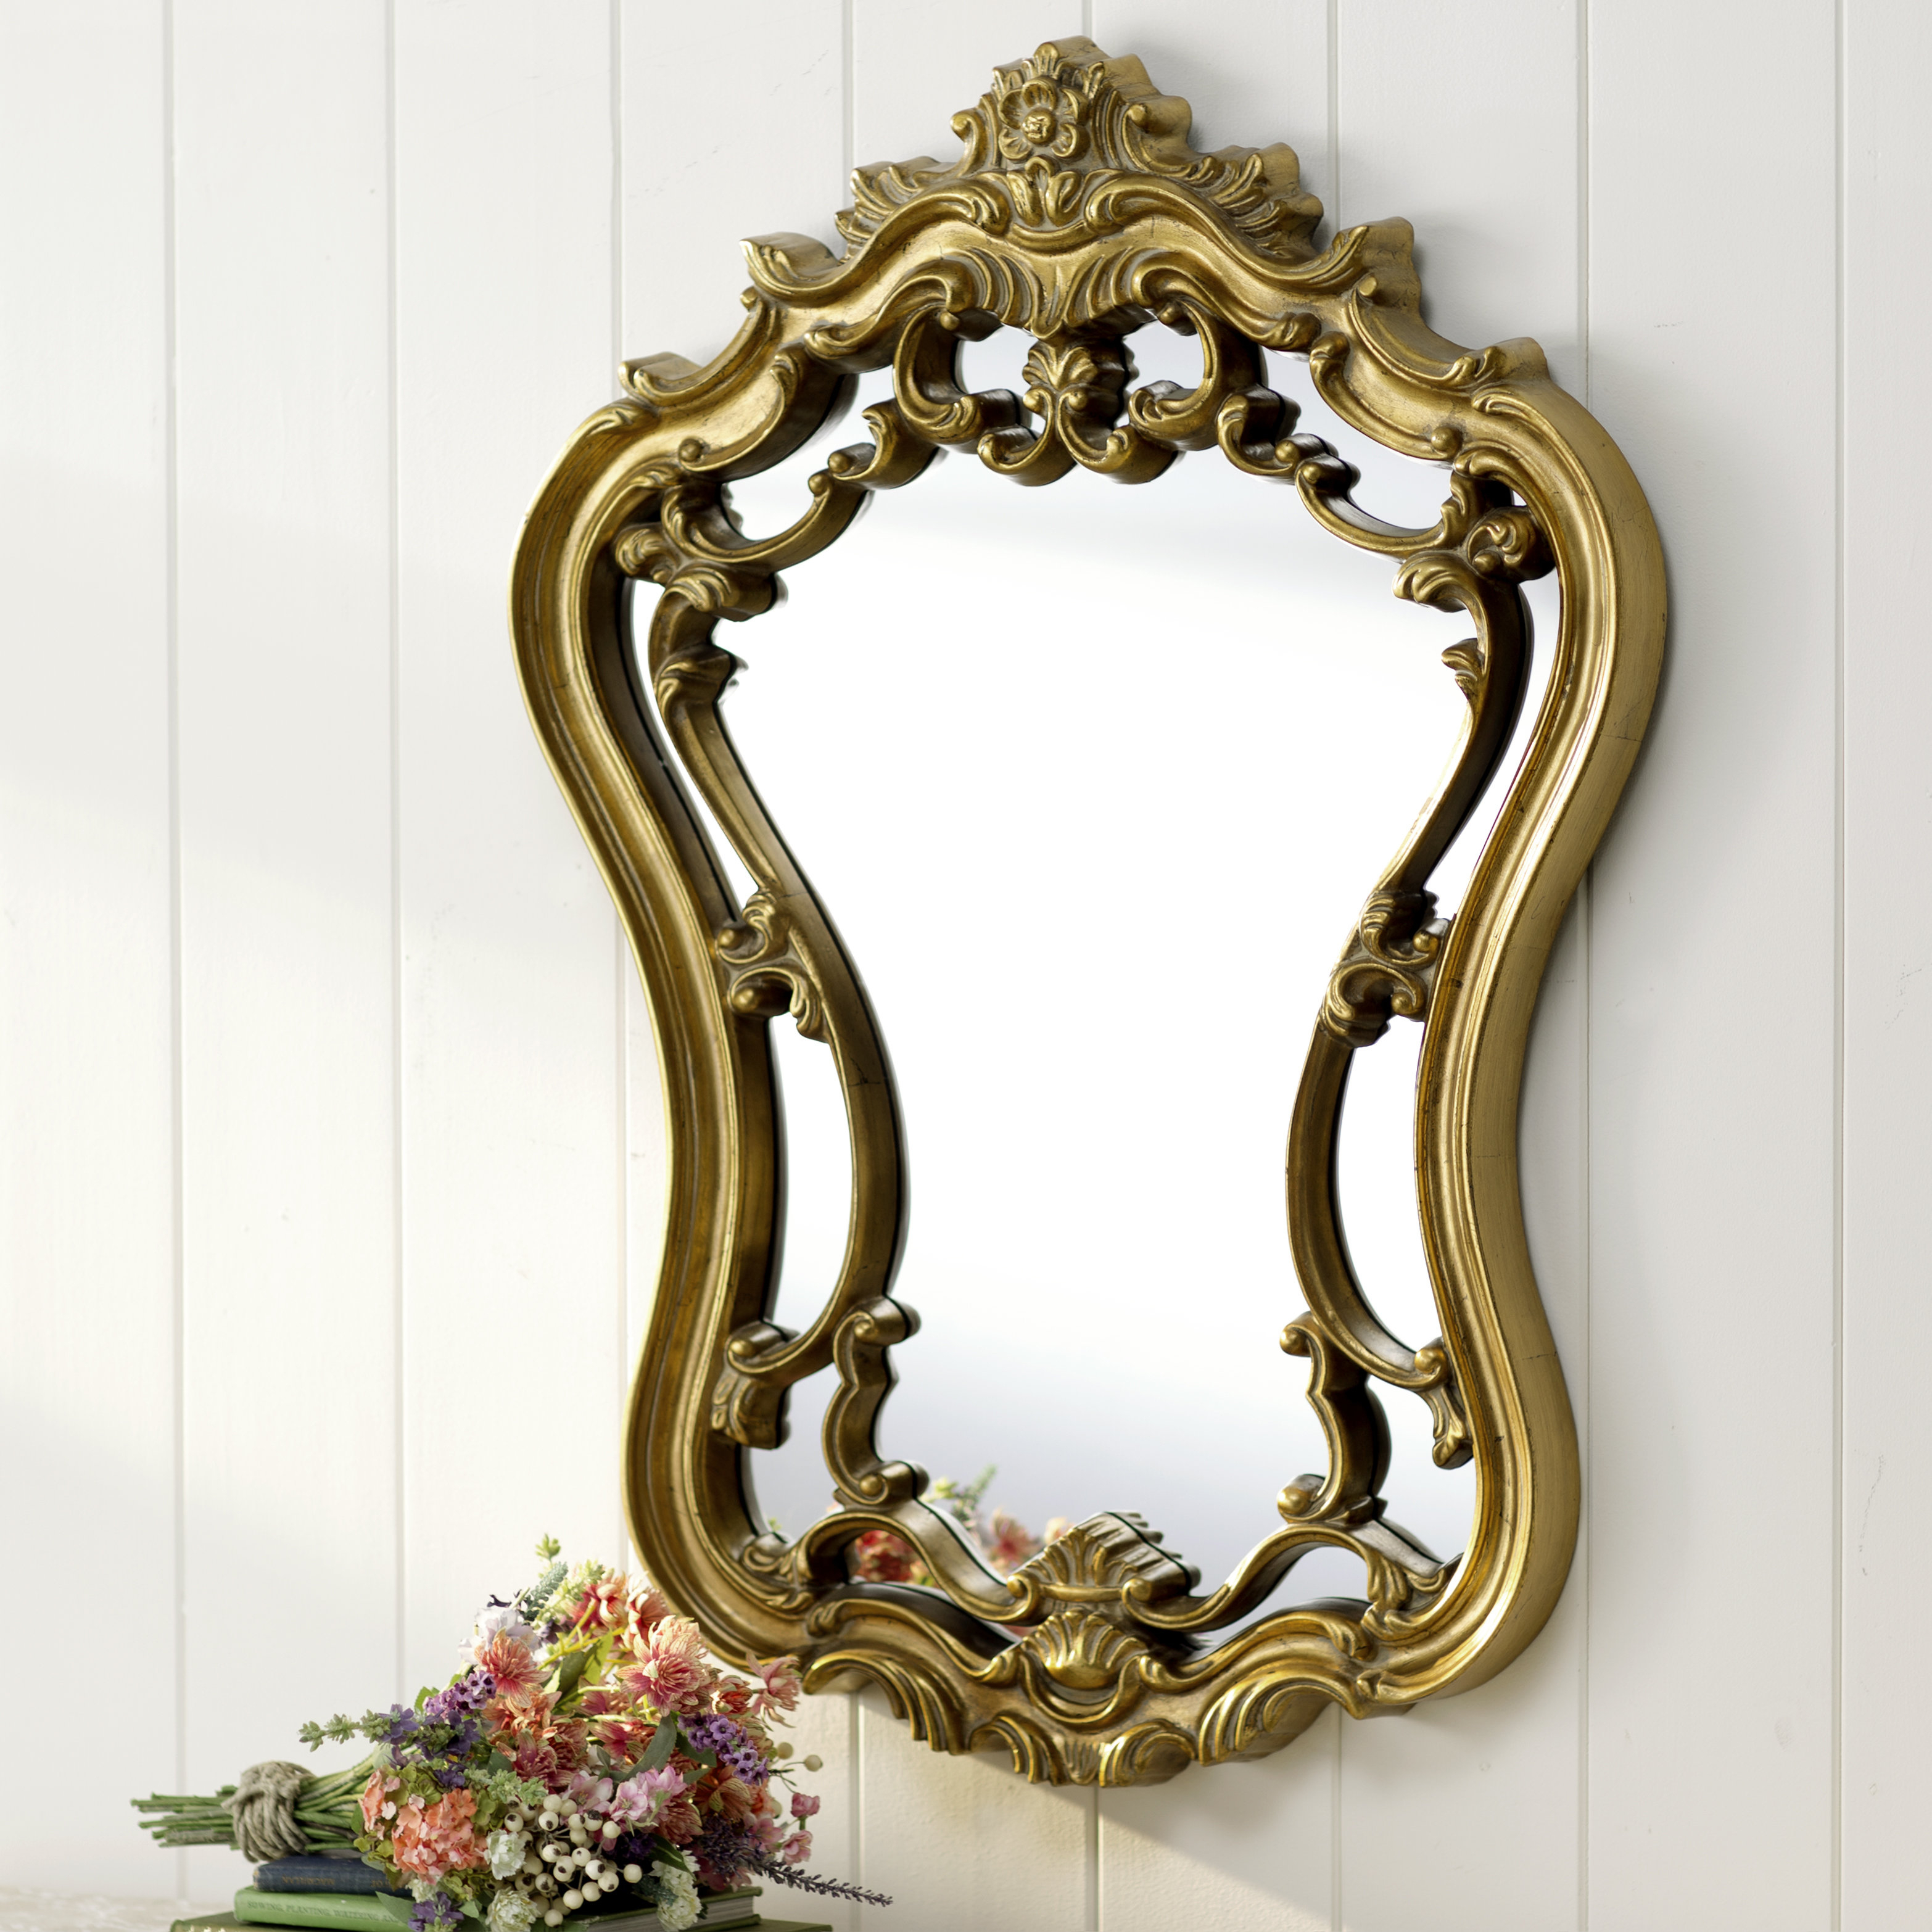 Lark Manor Mirror Polito | Wayfair Inside Polito Cottage/country Wall Mirrors (Image 12 of 30)